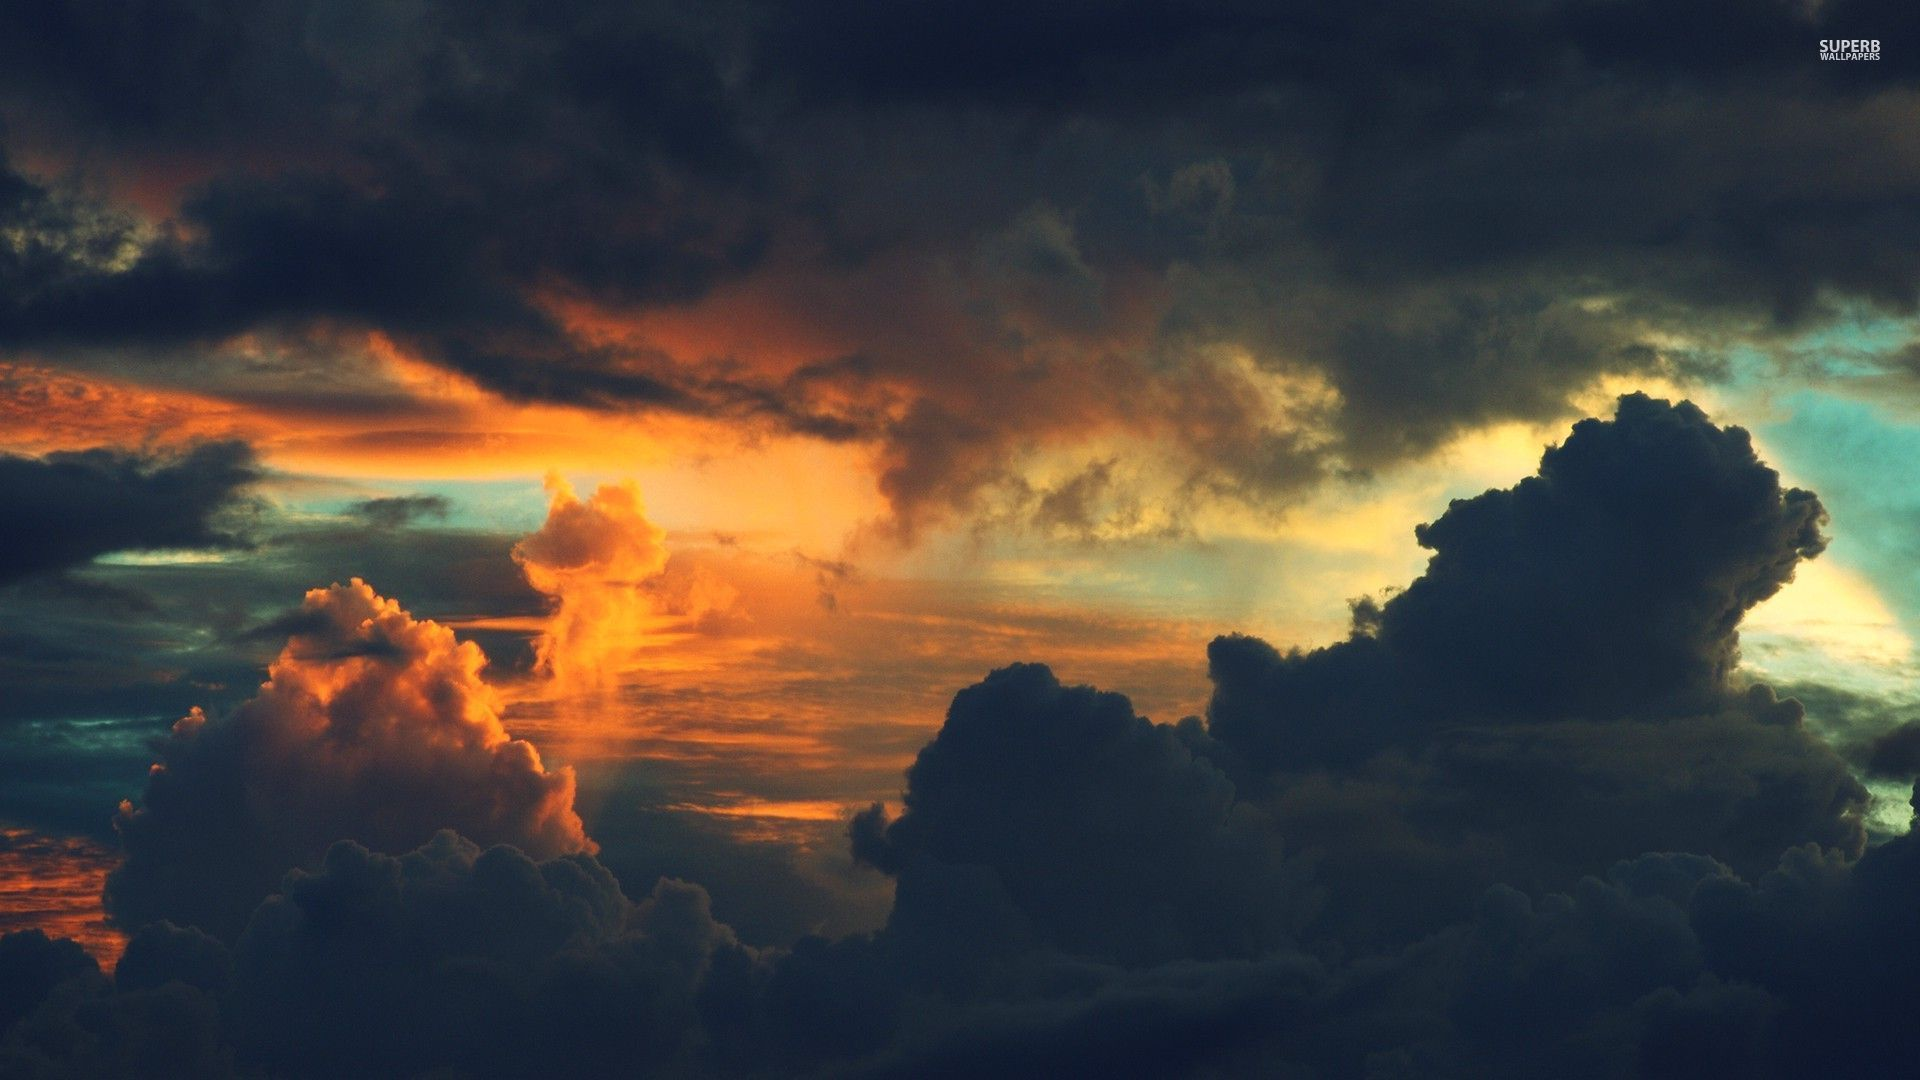 Clouds Wallpaper, 45 Clouds High Quality Backgrounds, GZH R